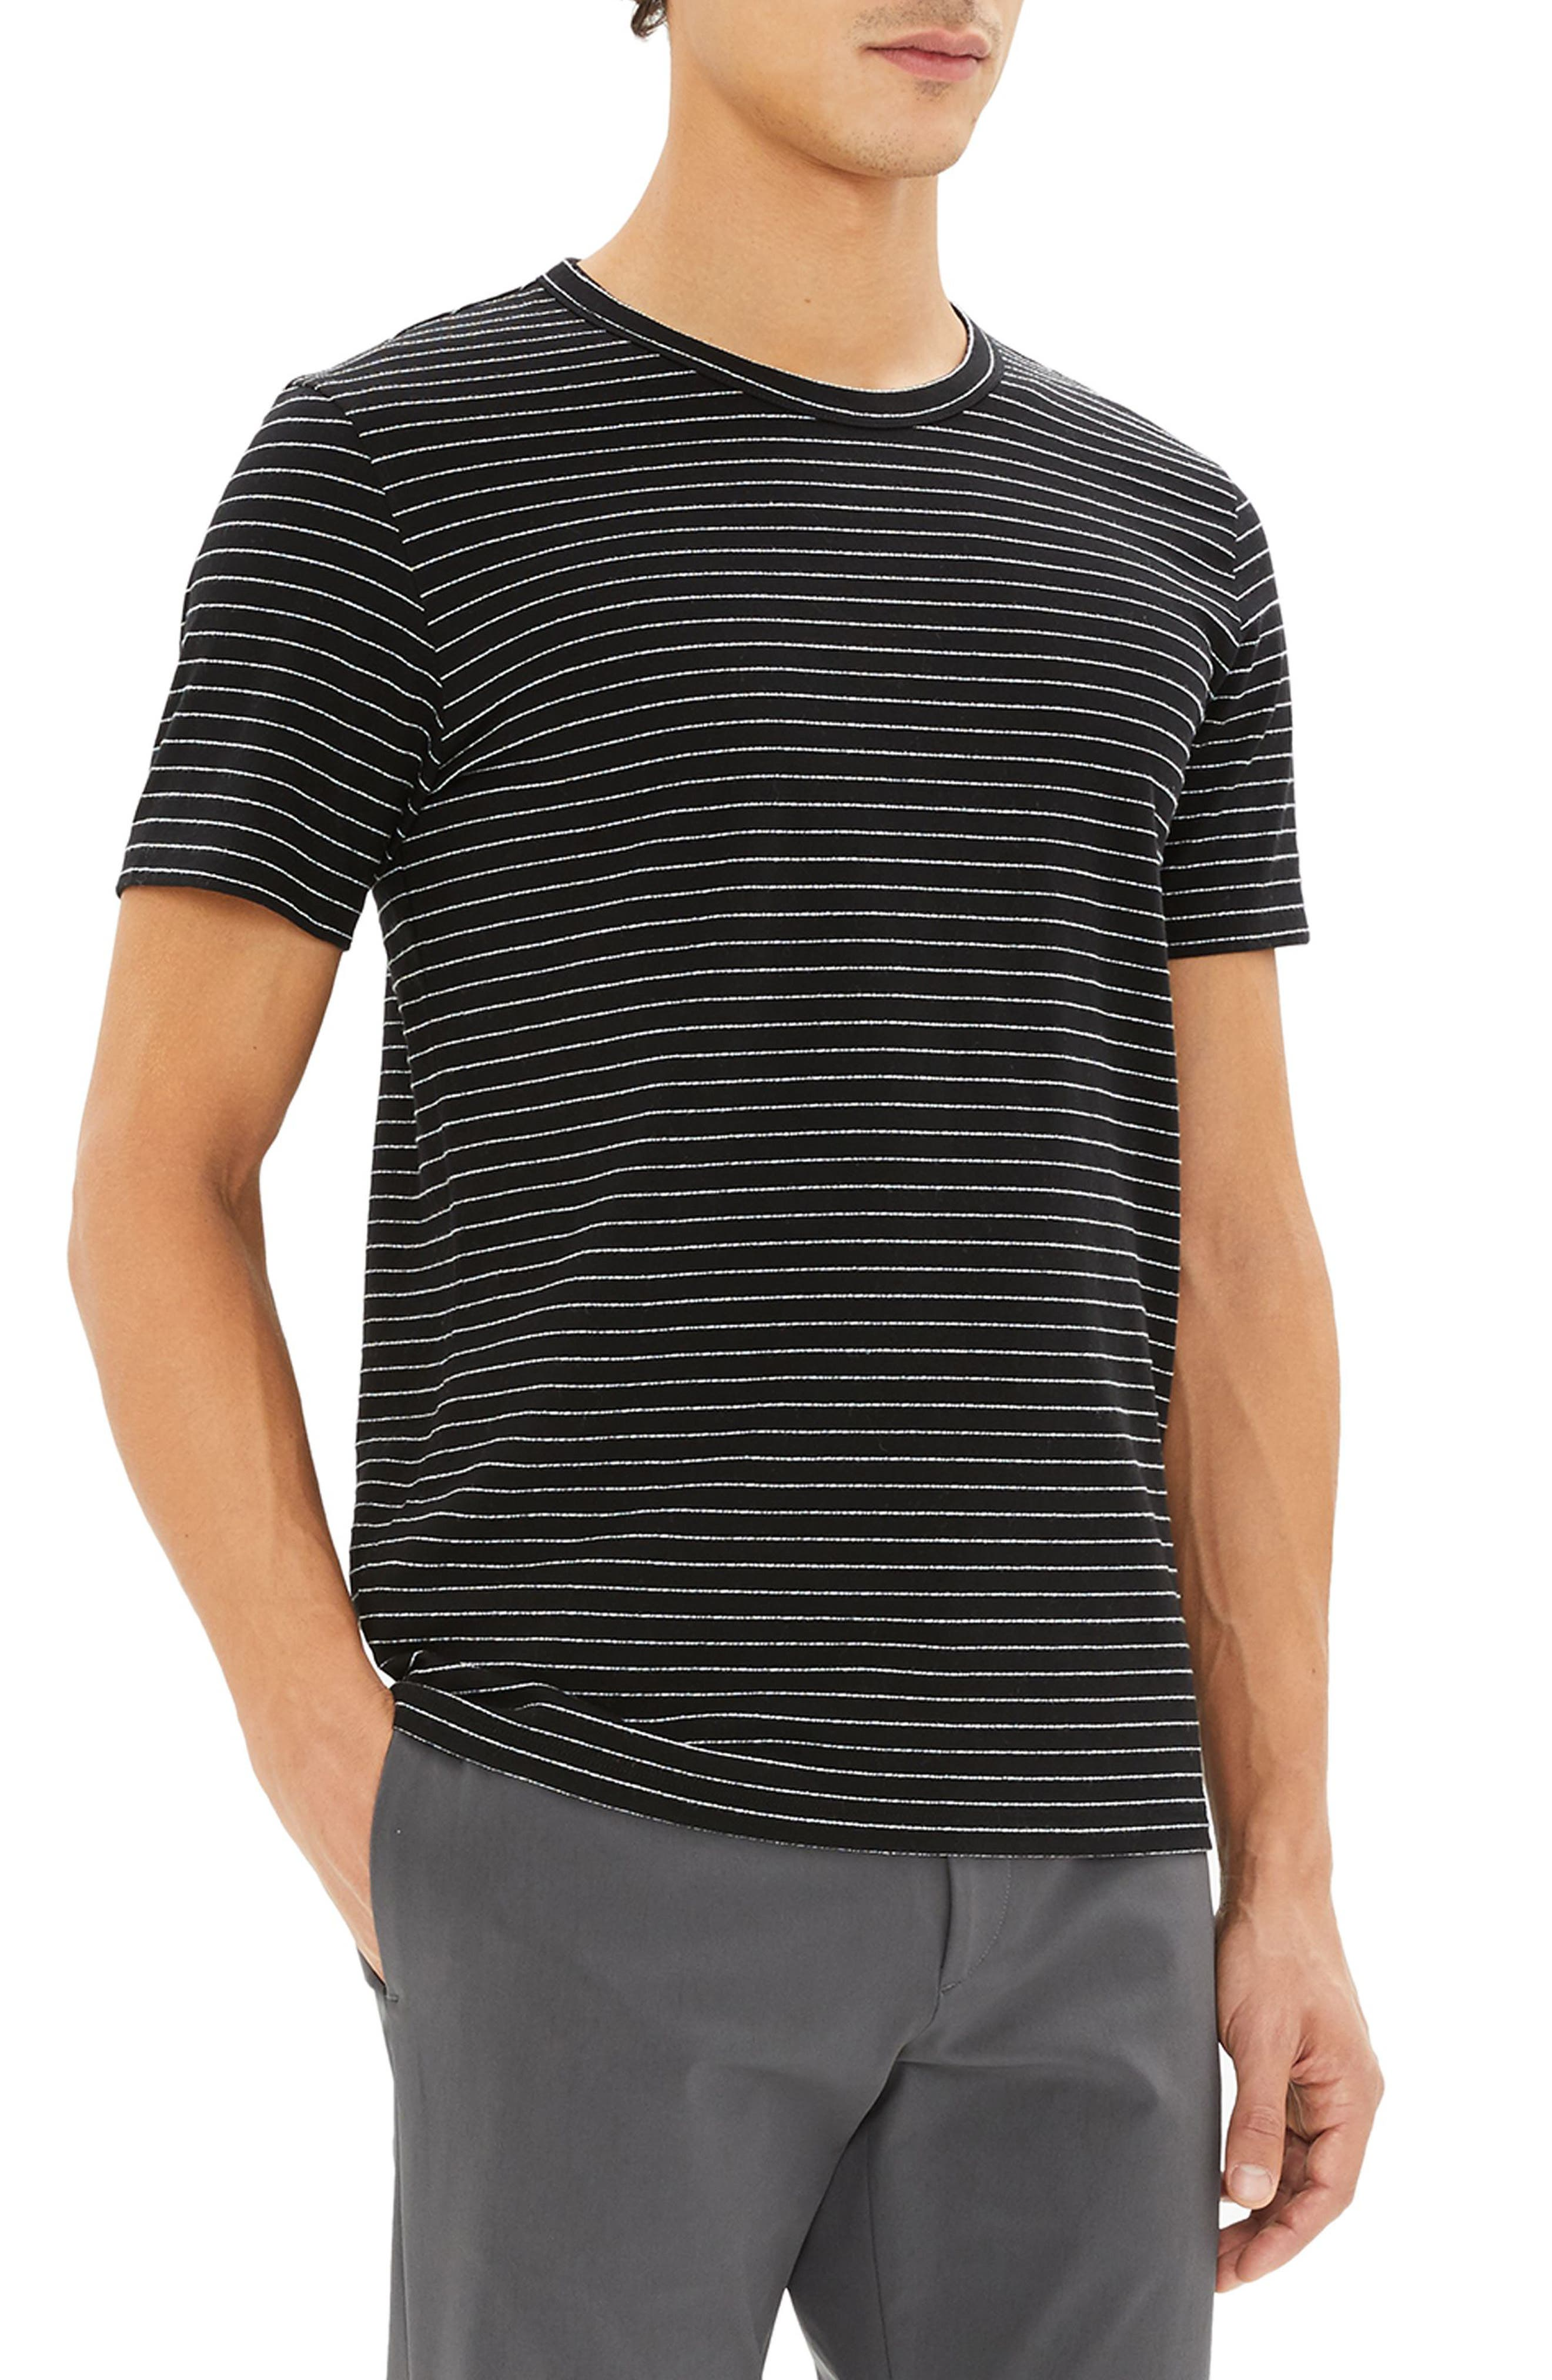 THEORY,                             Essential Striped T-Shirt,                             Alternate thumbnail 3, color,                             009